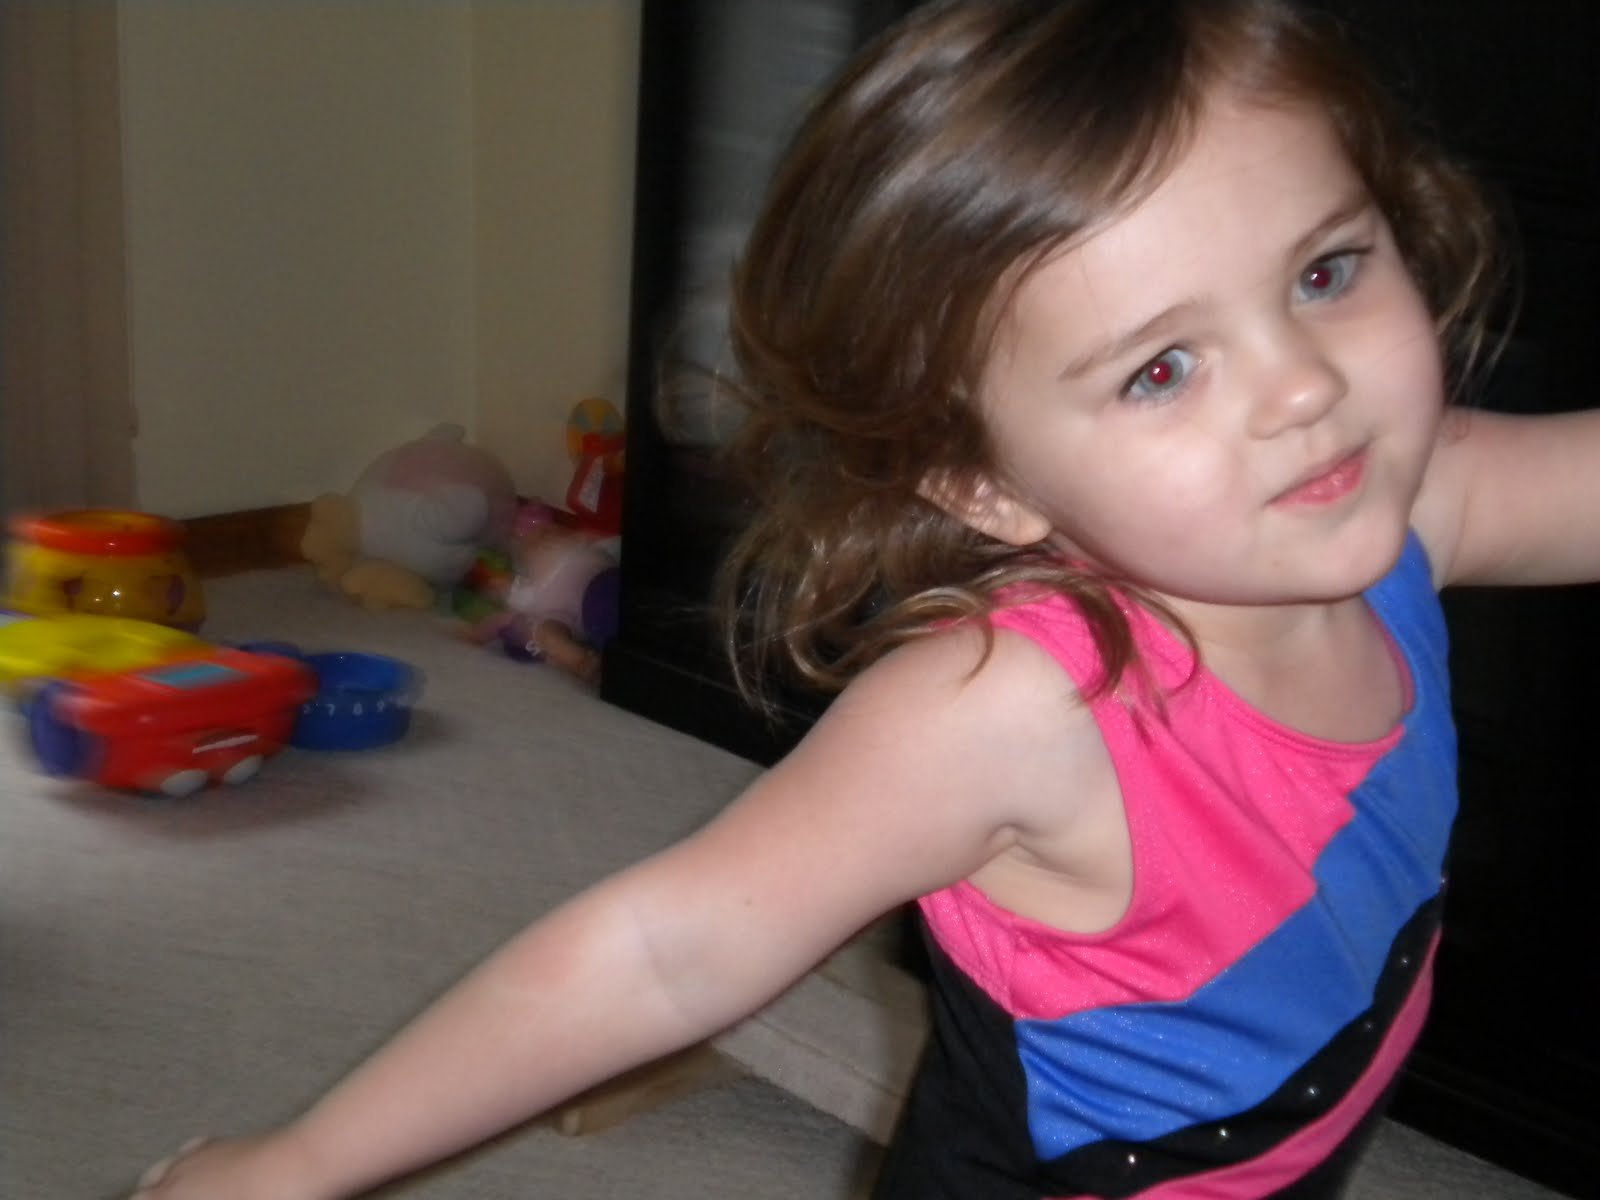 JJ and the Princess Girls: My Little Gymnast